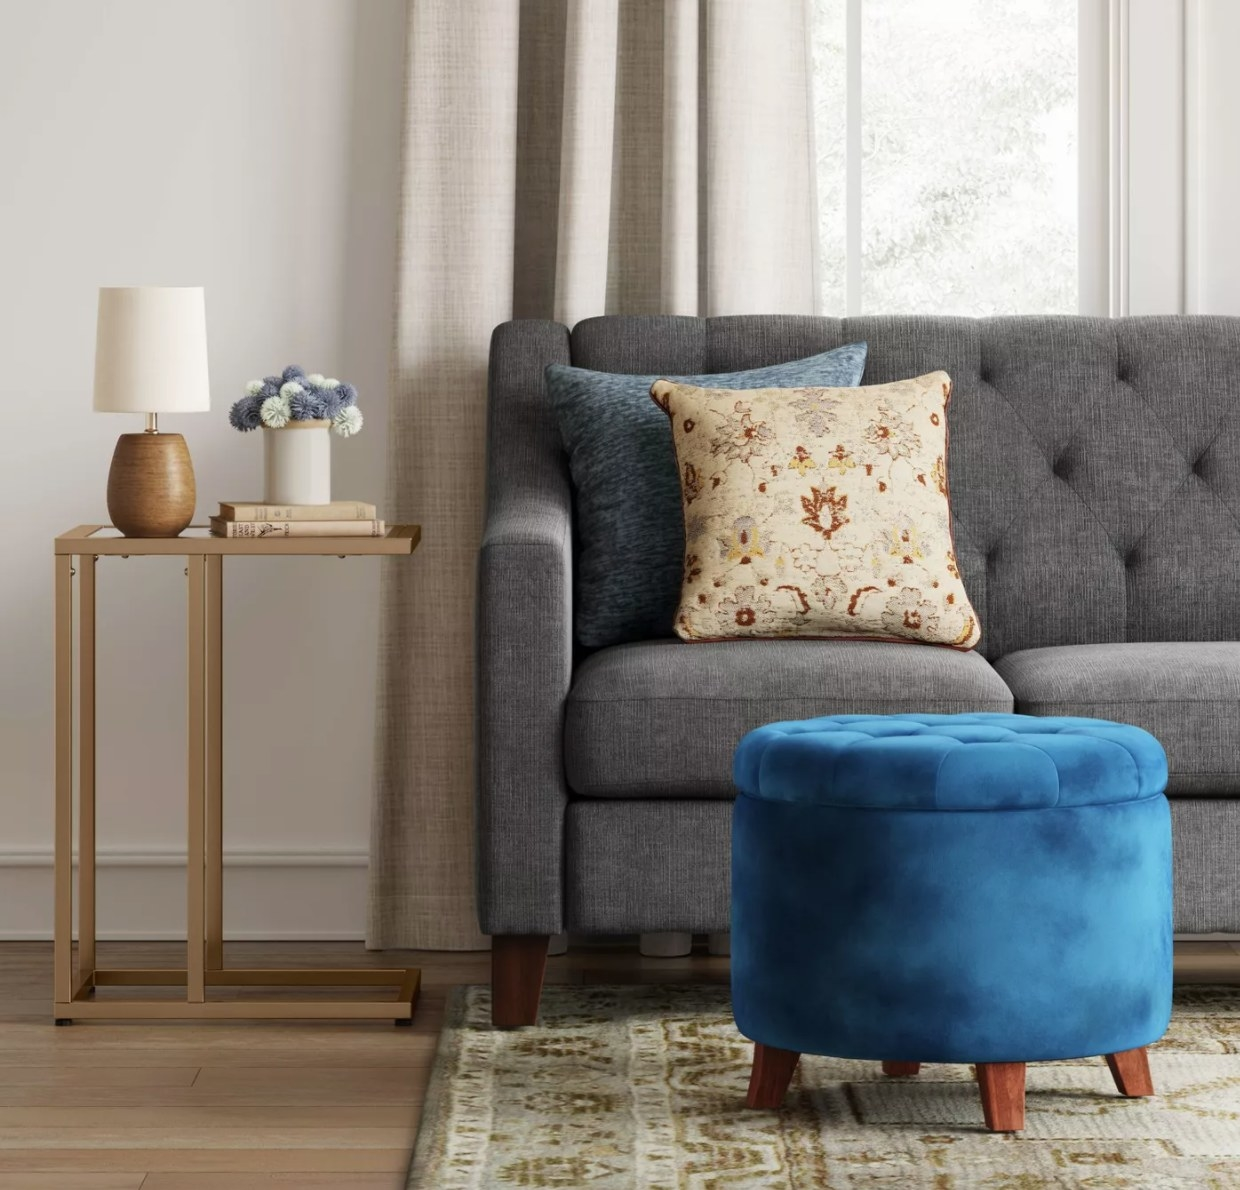 A blue velvet tufted storage ottoman with wooden legs